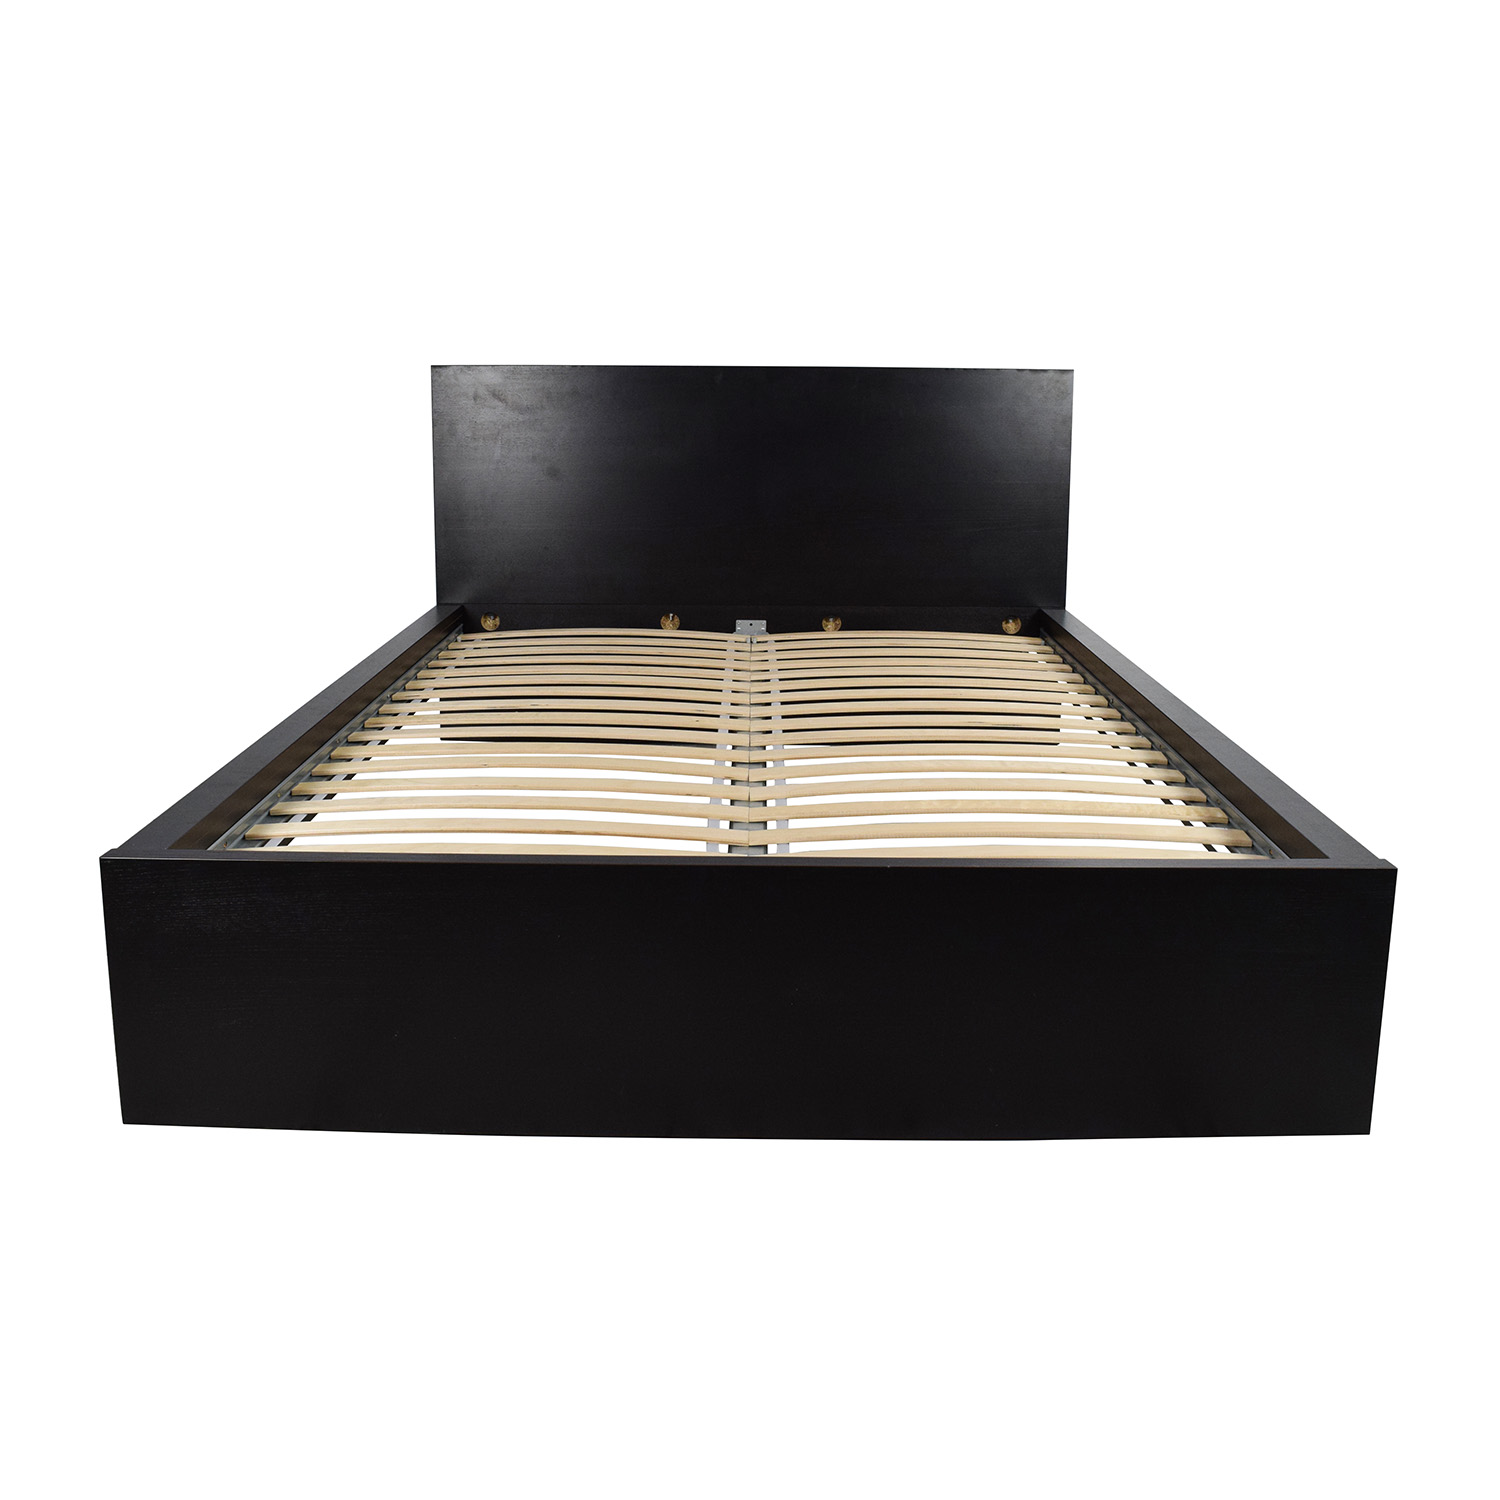 ikea ikea queen bed frame for sale - Ikea Queen Bed Frames